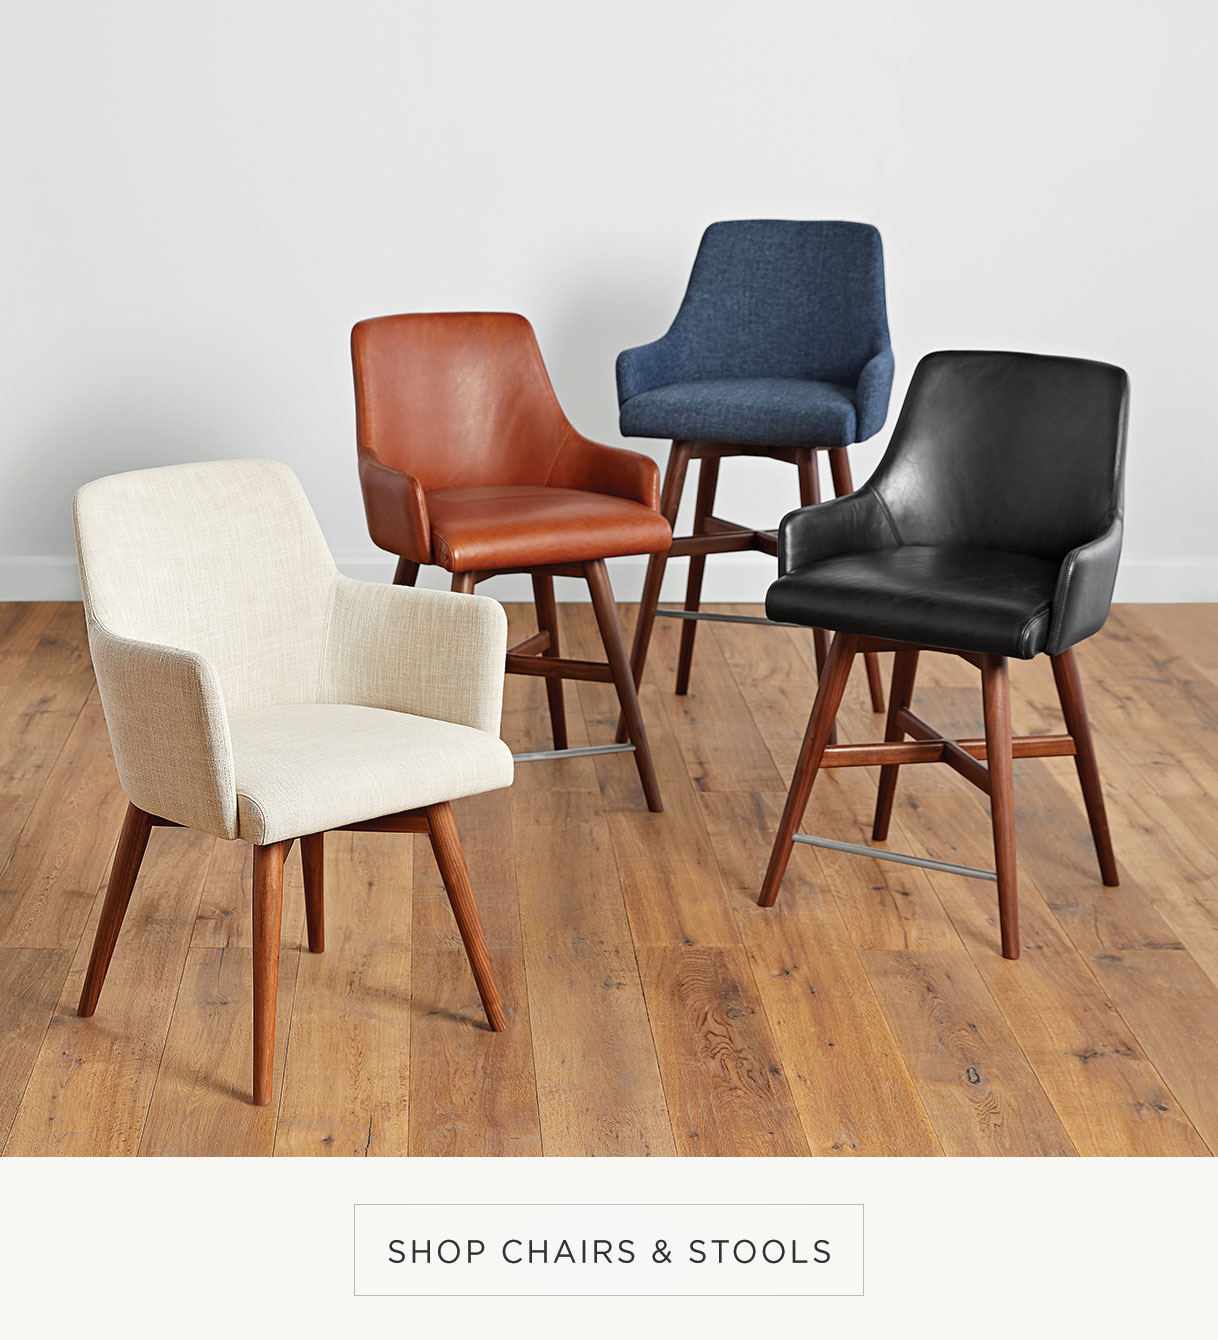 Shop Chairs & Stools